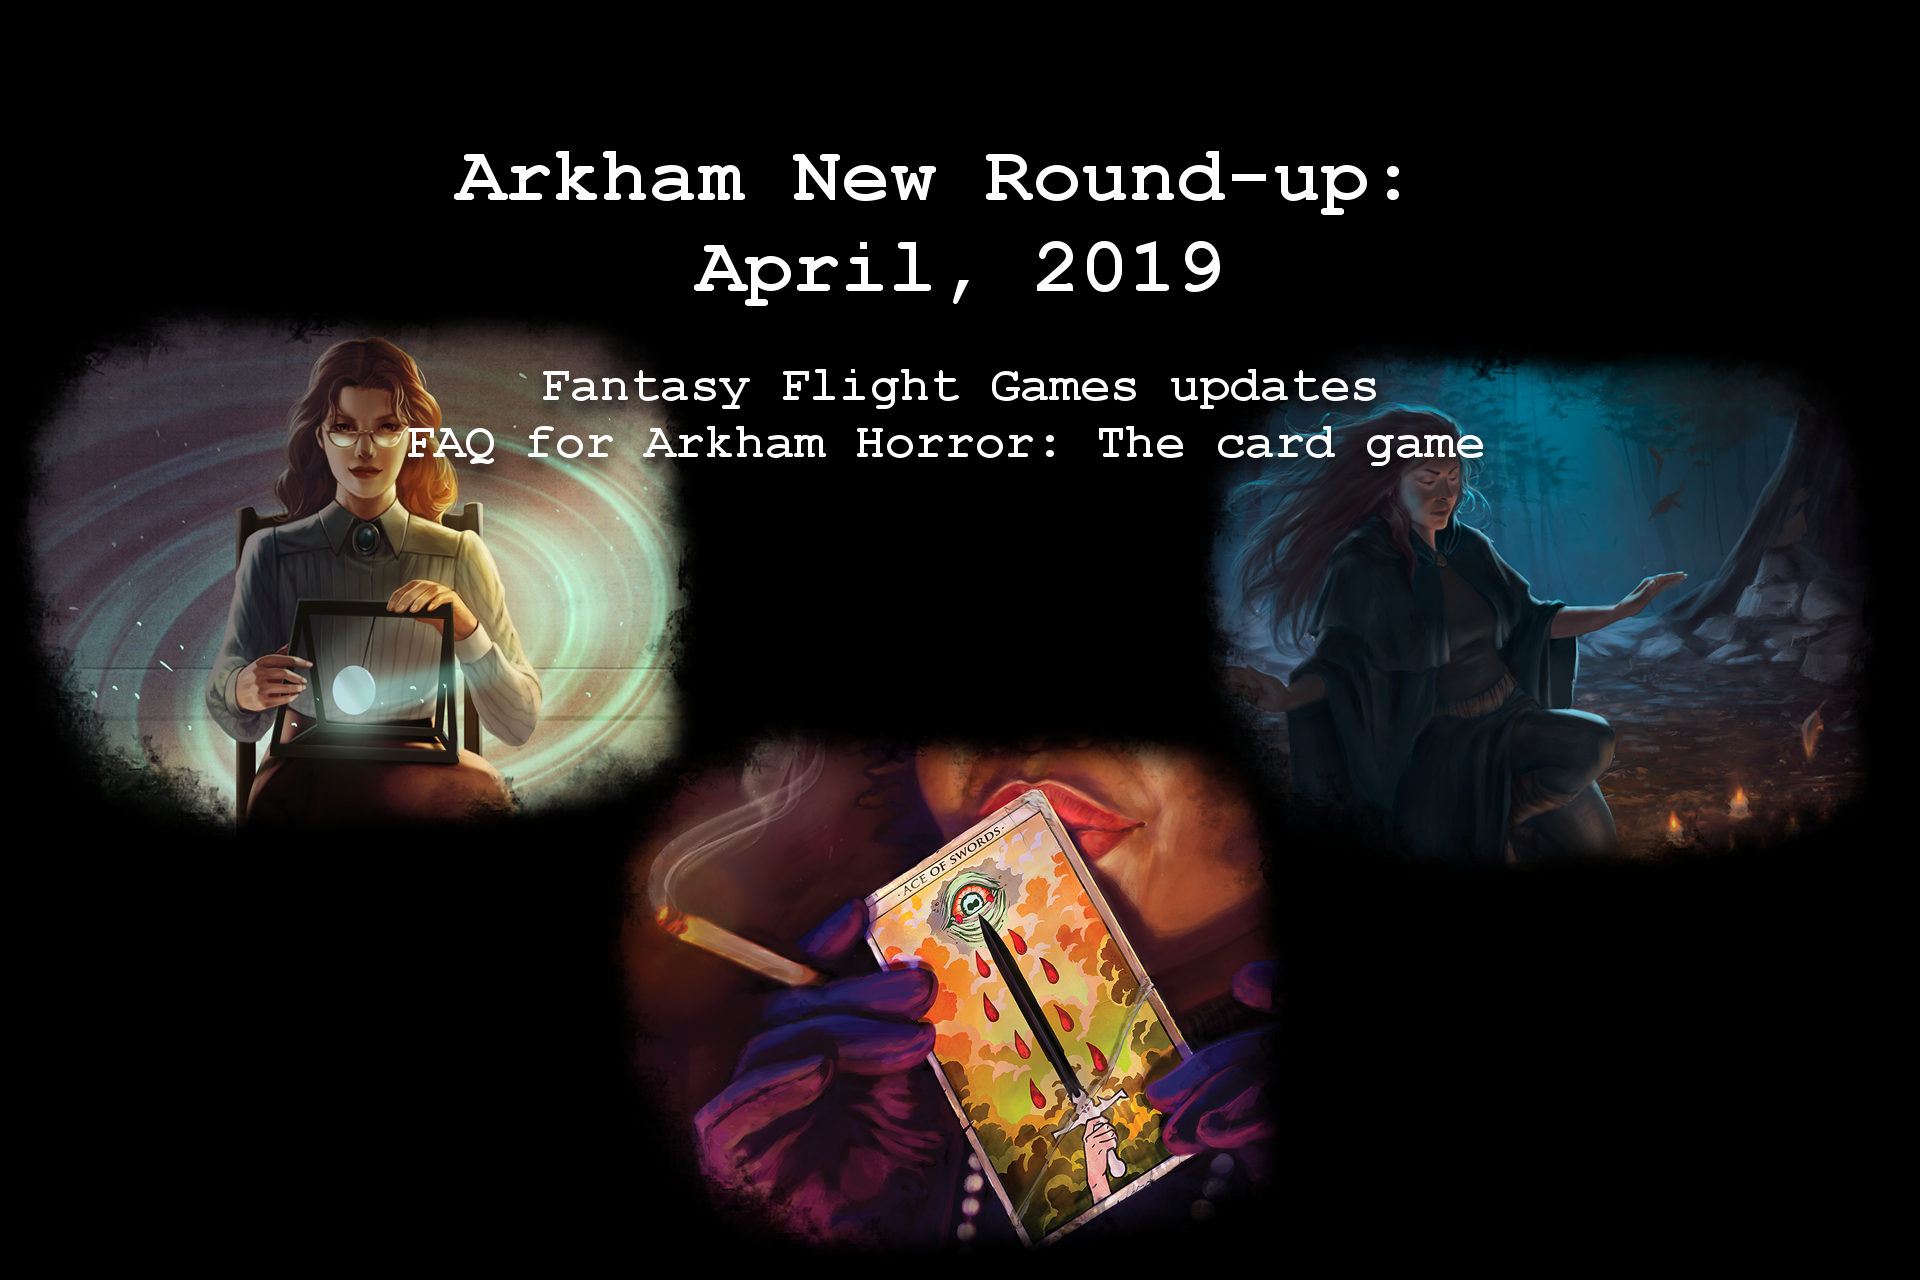 Arkham News Round up April 2019 FAQ.jpg